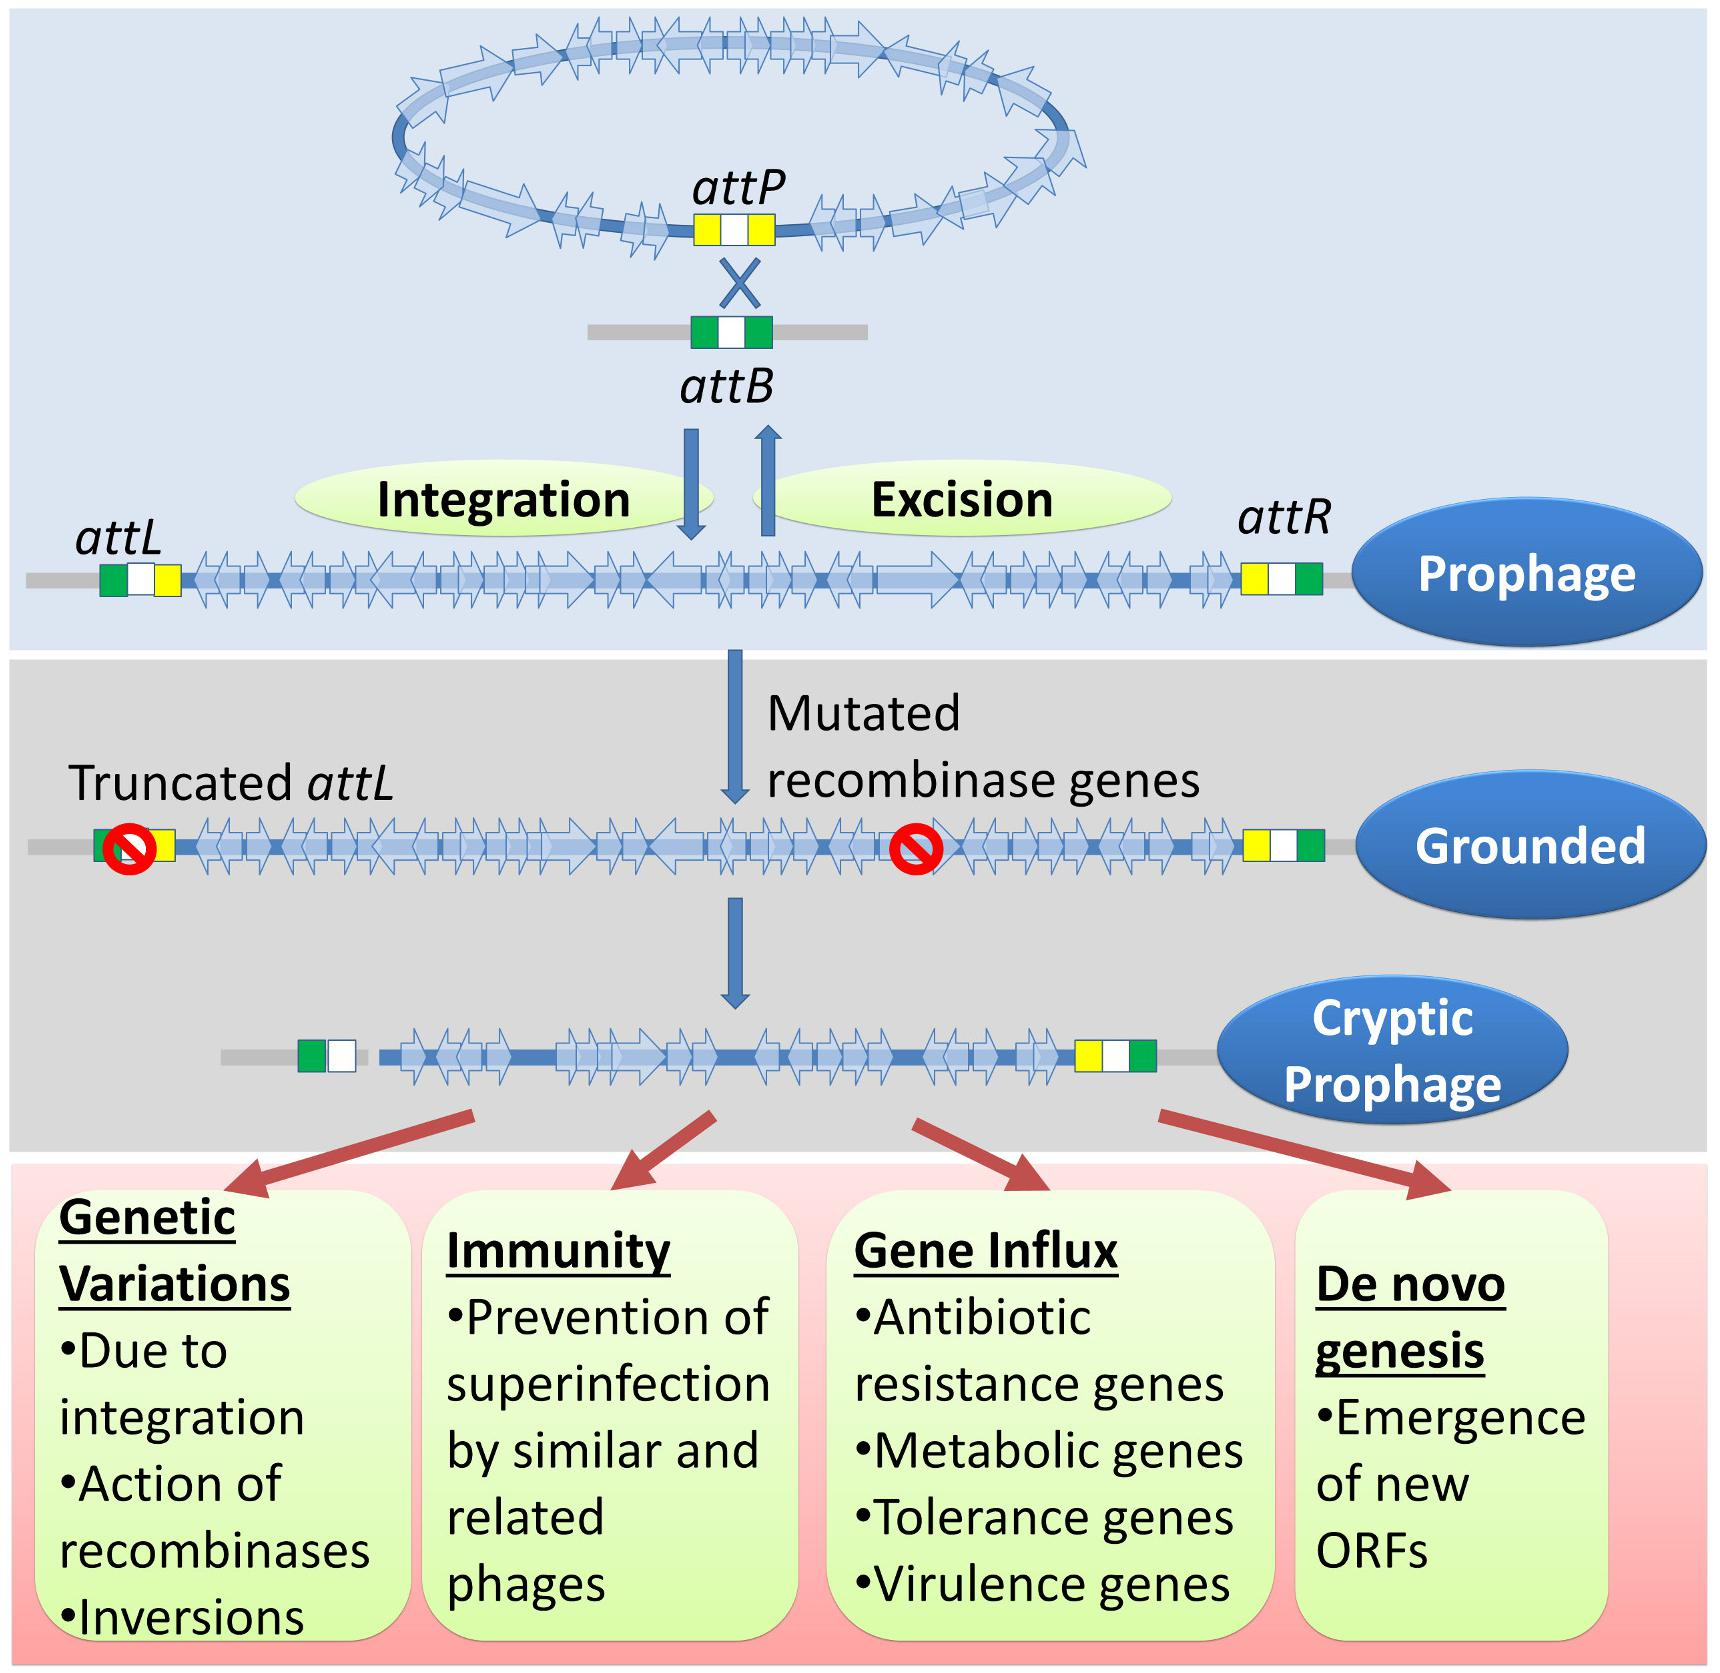 Frontiers | Bacterial 'Grounded' Prophages: Hotspots for